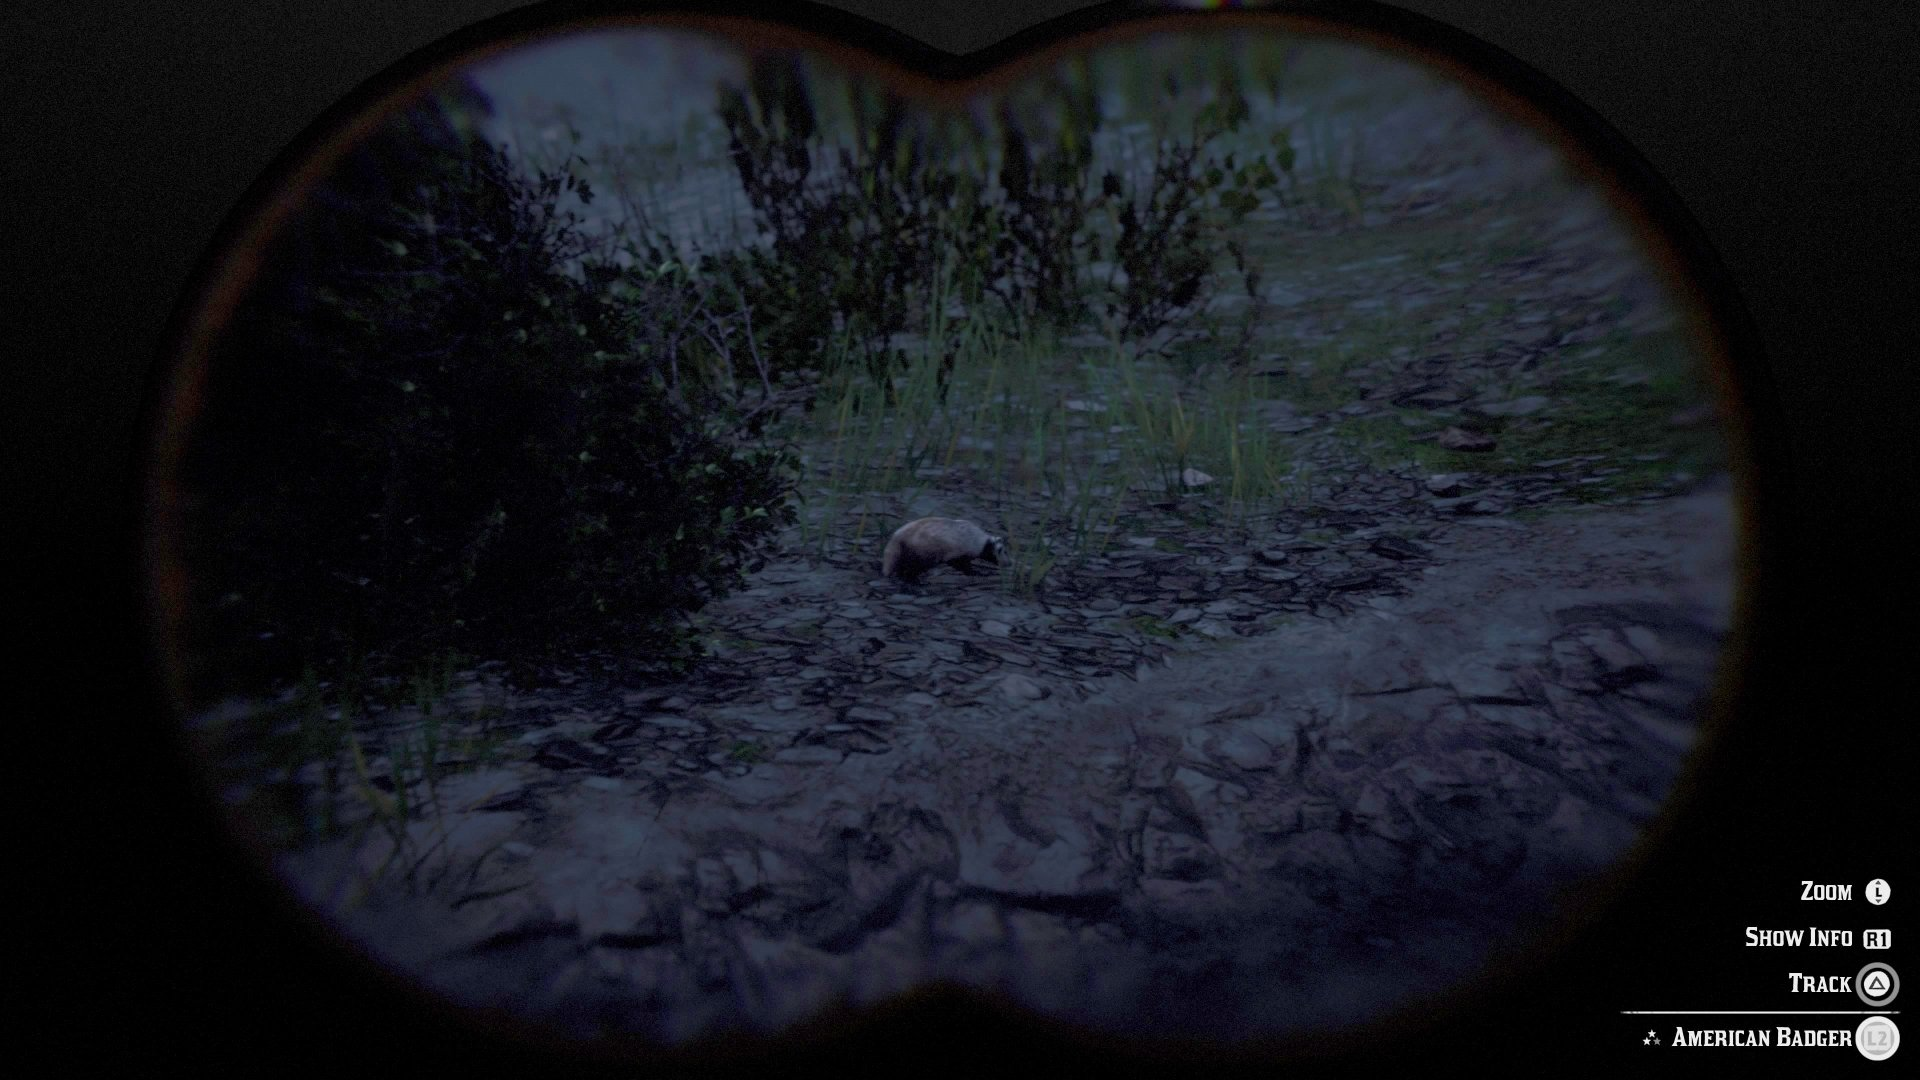 Badger locations in RDR2